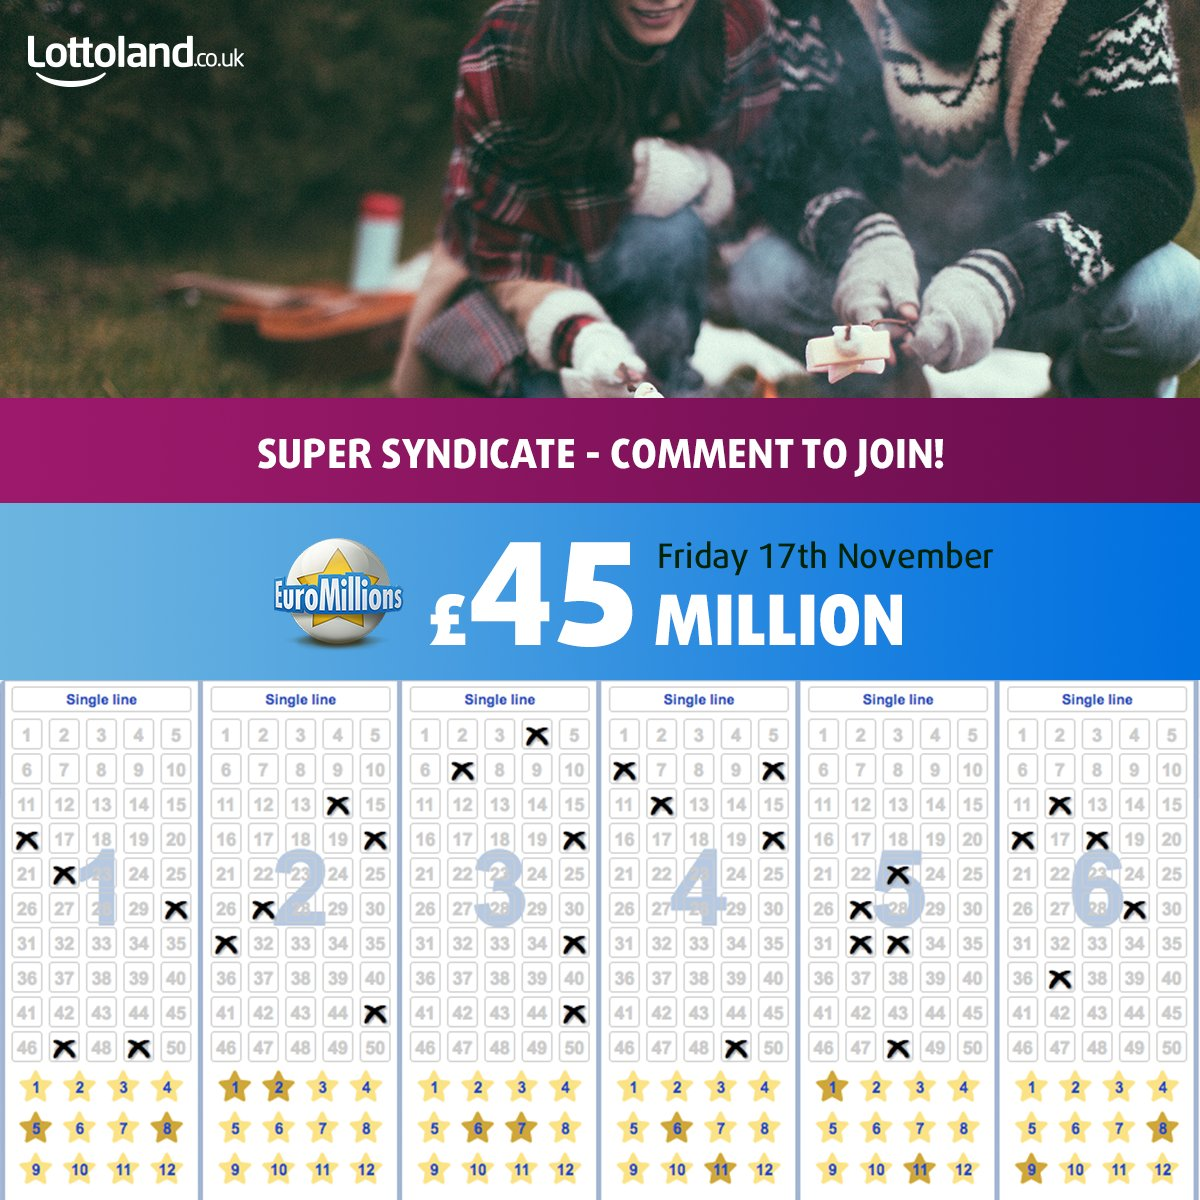 RT to join our #EuroMillions #SuperSyndicate.Split prizes on £10K+ #wins  #TGIF #FridayFeeling #FreebieFriday  Bet now:  https://www. lottoland.co.uk/euromillions?p id=tw_s_ukct&amp;utm_source=tw&amp;utm_medium=osm&amp;utm_campaign=ct &nbsp; … <br>http://pic.twitter.com/WcsHTuTZBF